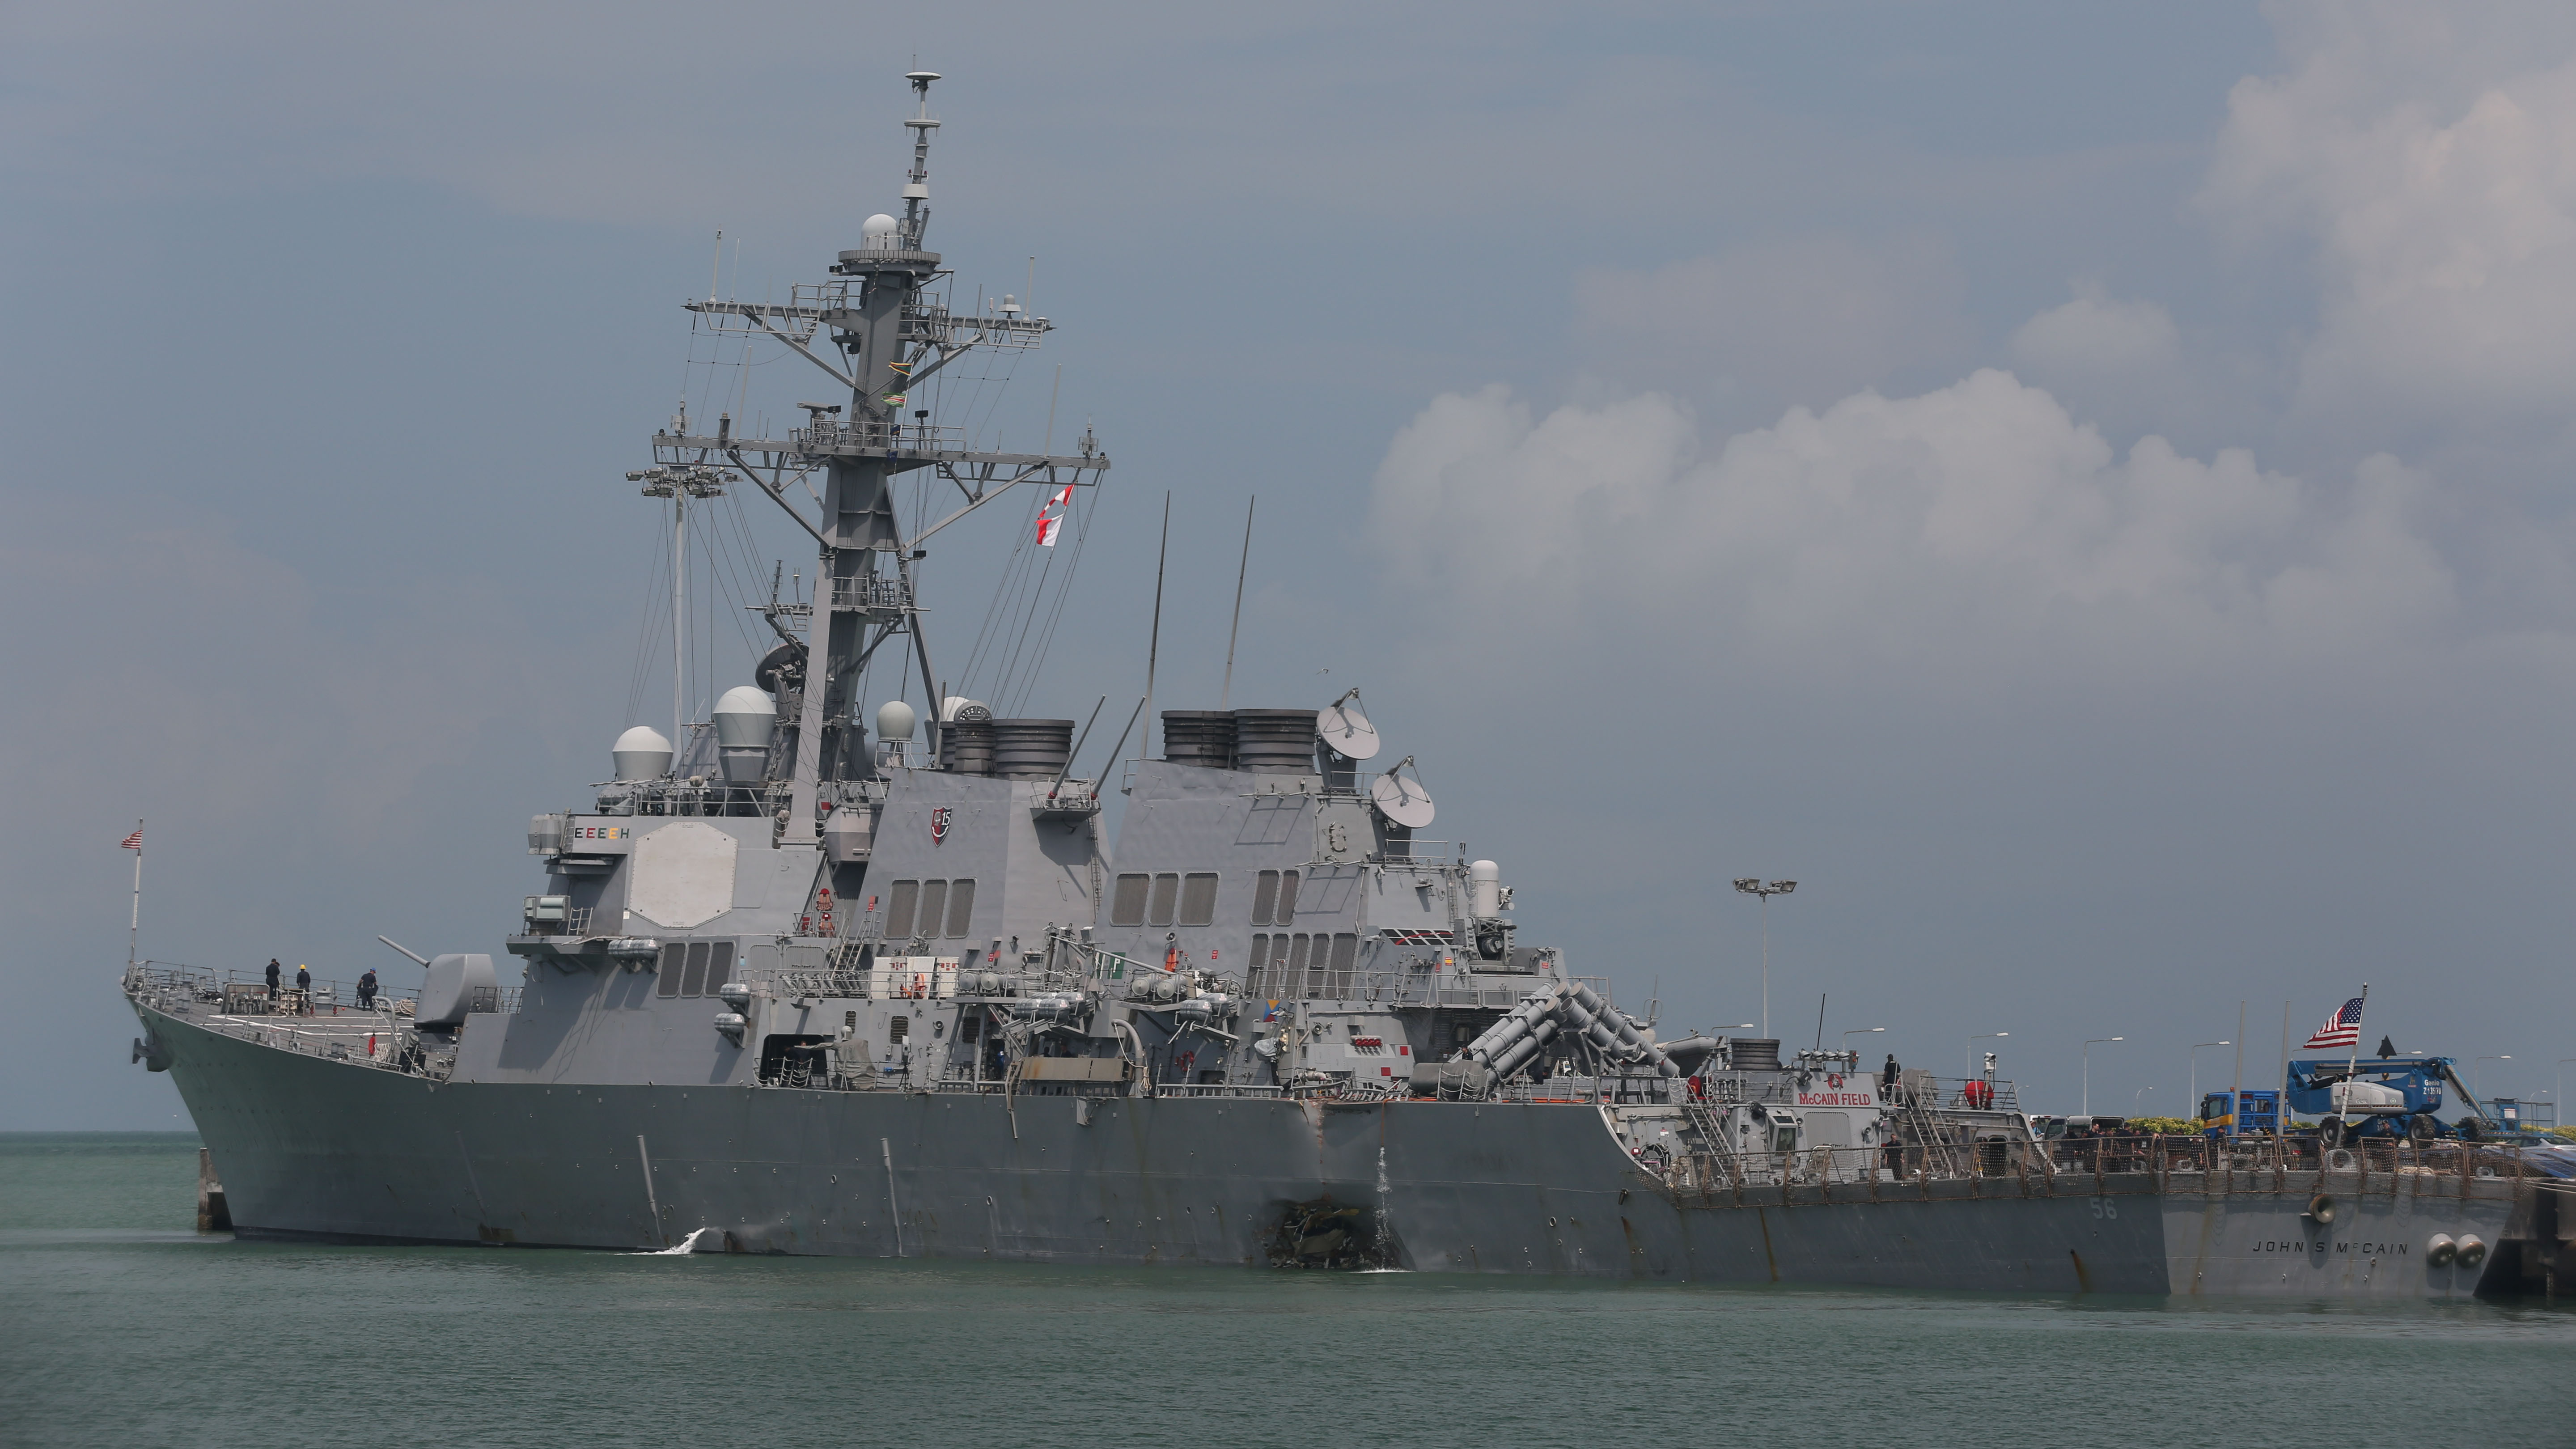 For U.S. Navy destroyers, old controls might be safer than new tech